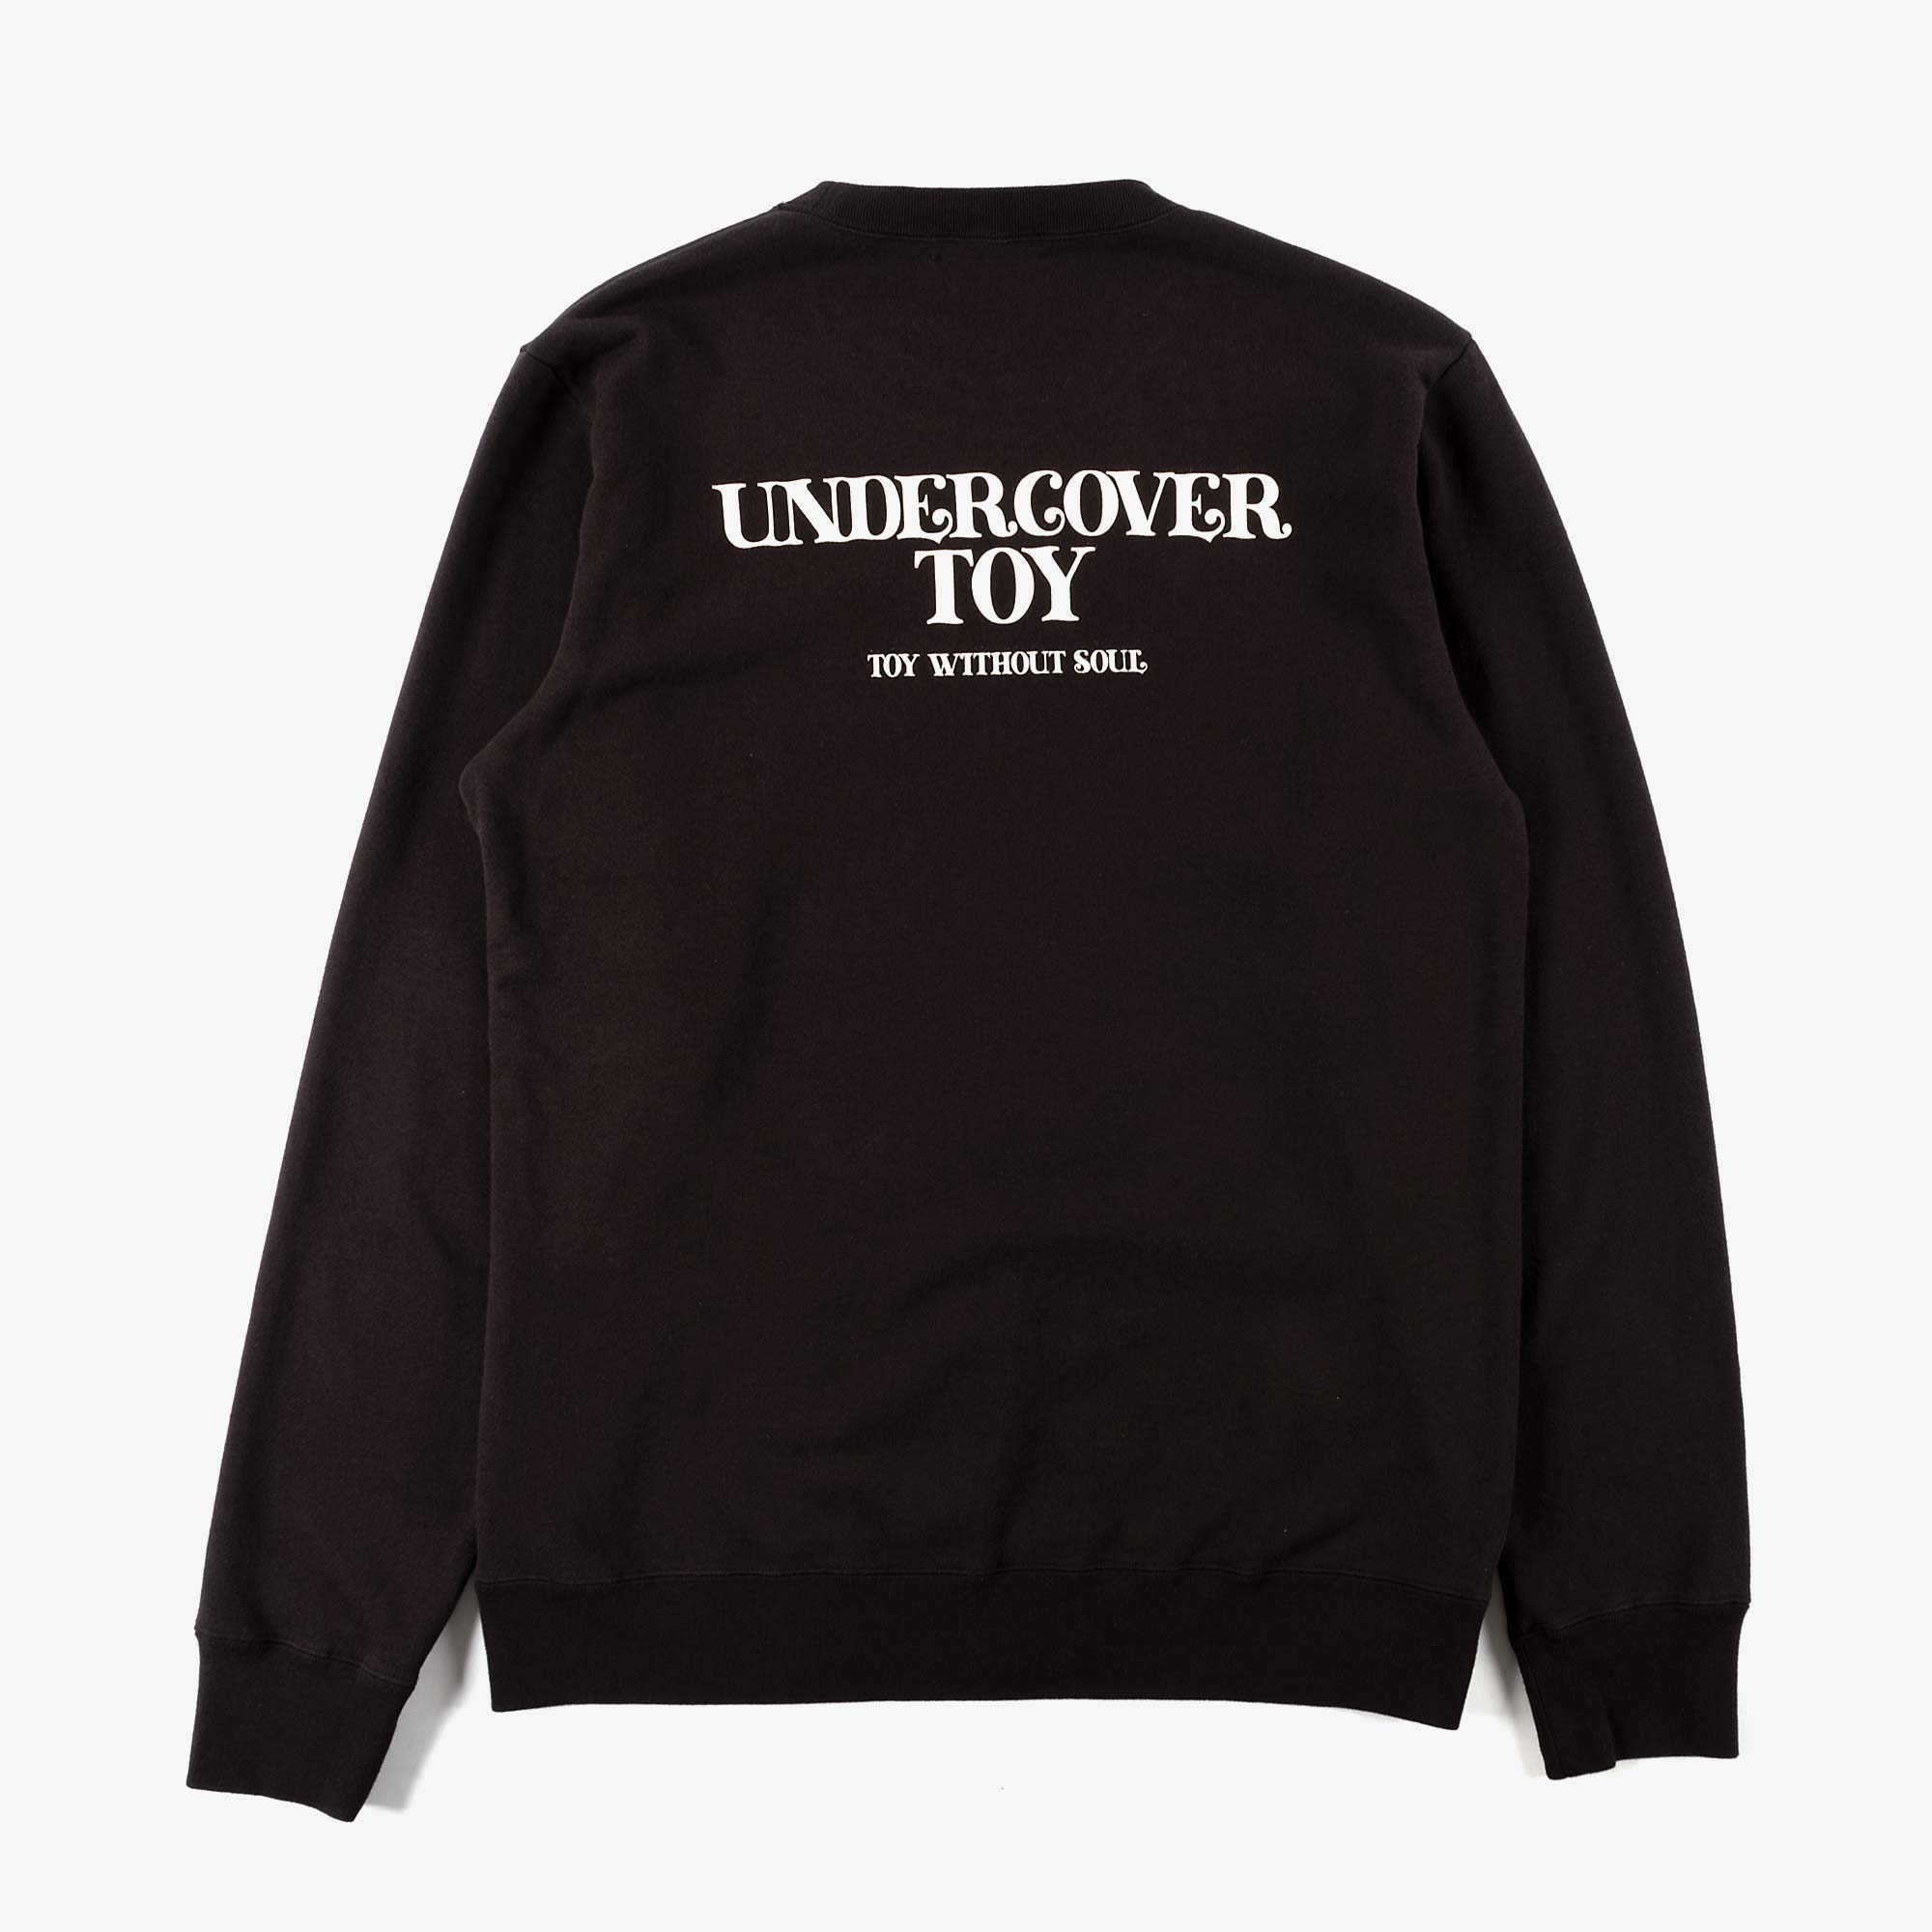 Undercover Toy Sweat UC1A4891-2 - Black 2